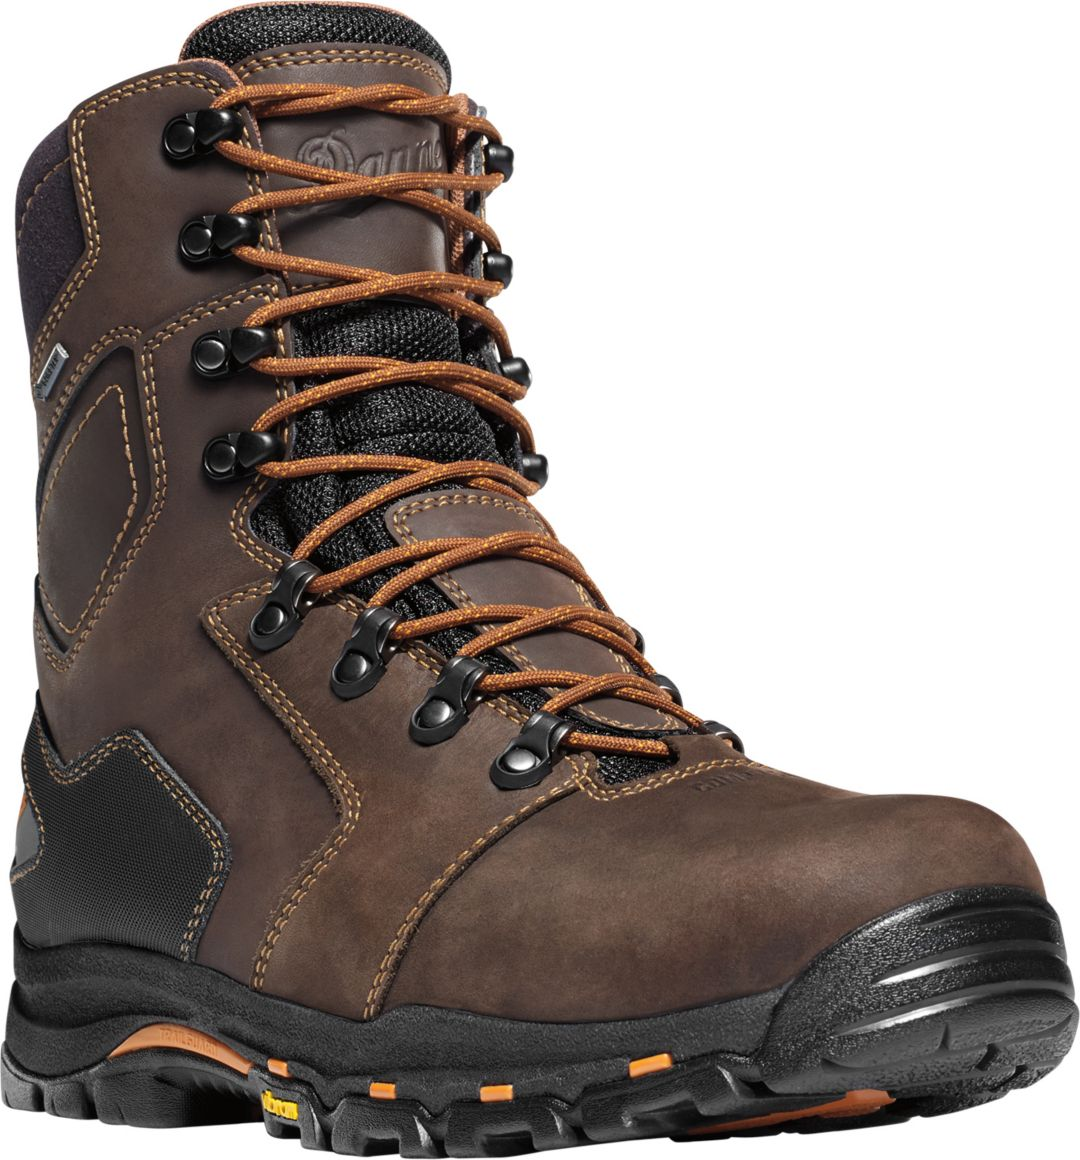 3357d5125ca Danner Men's Vicious 8